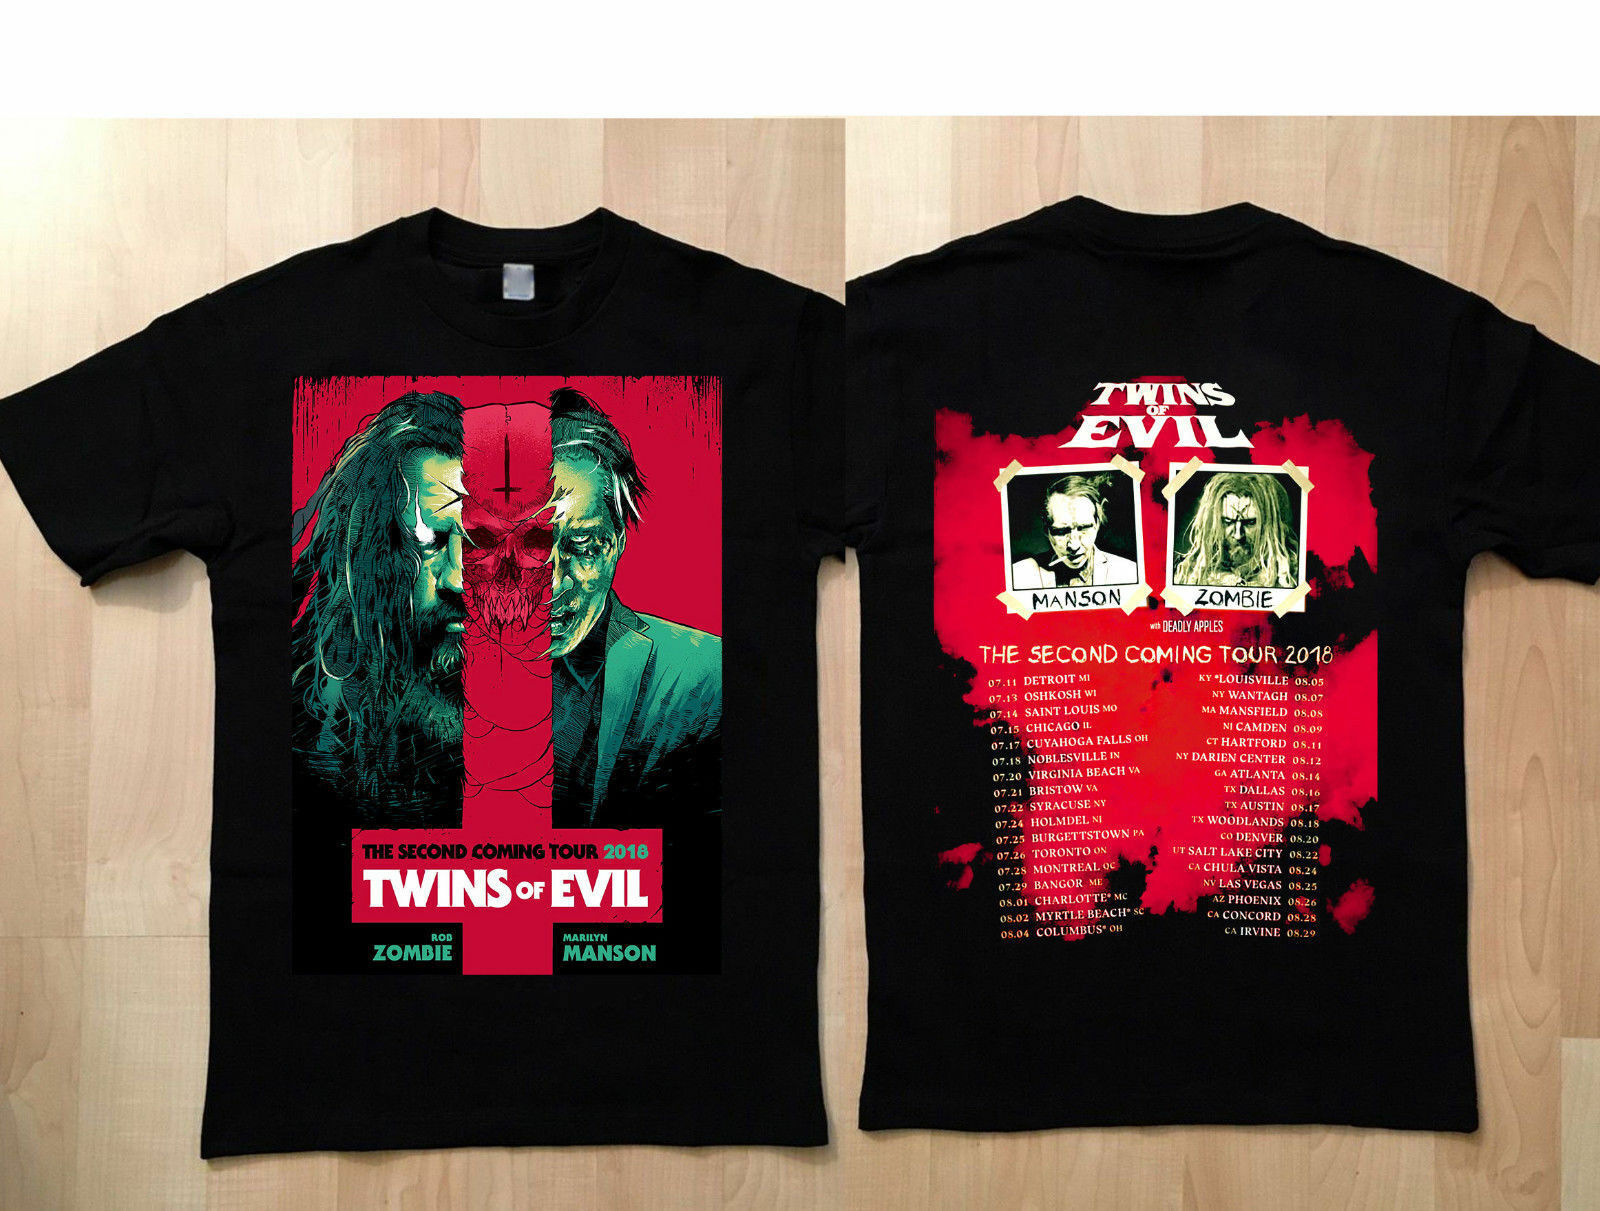 32cc9c95e242 T-Shirt twin of evil the second rob zombie marilyn manson coming tour 2019  NEW. US $13.04